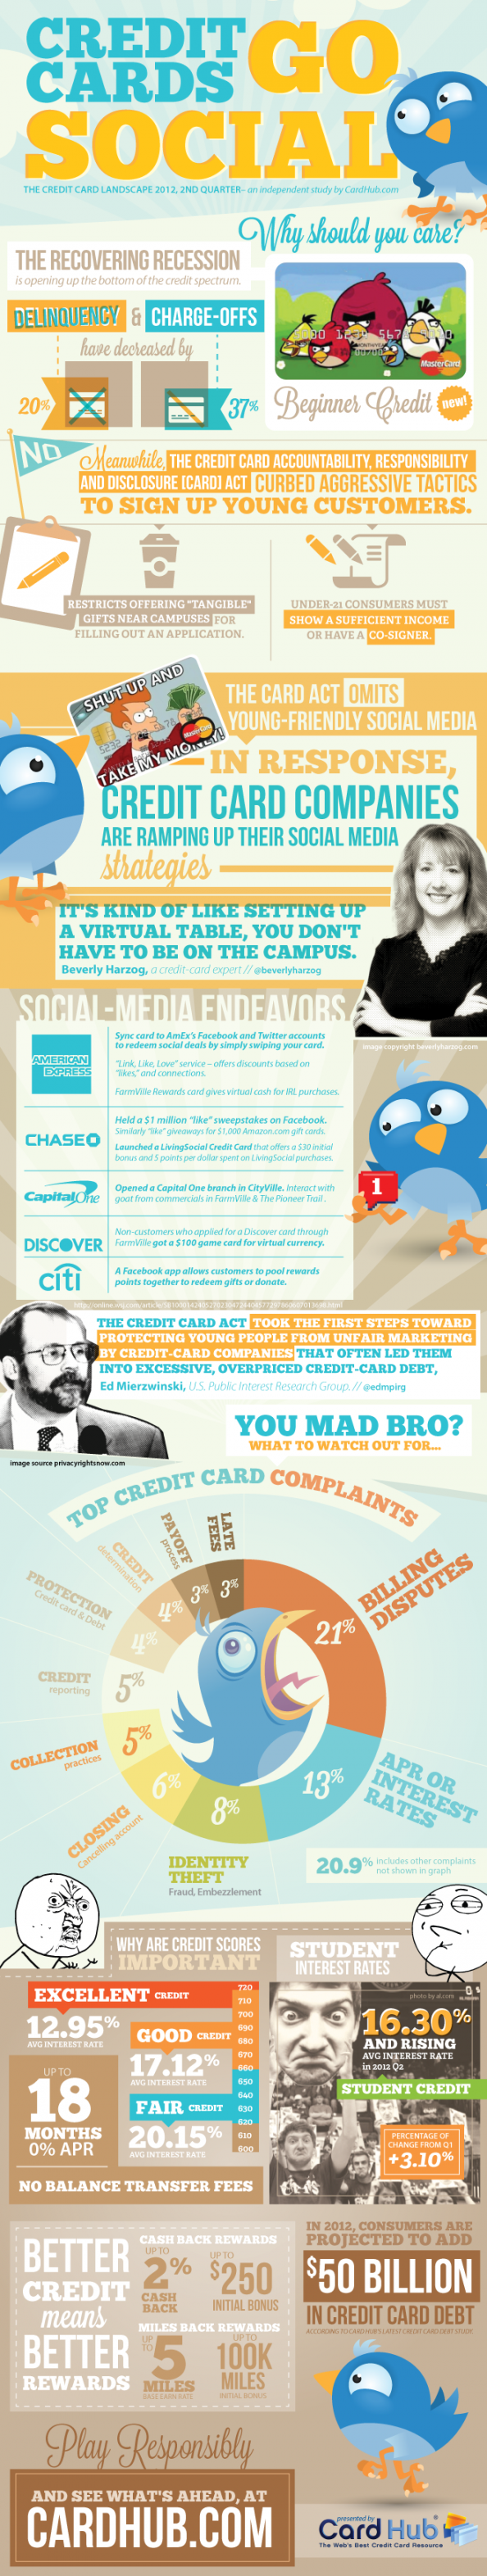 Credit Cards Go Social Infographic